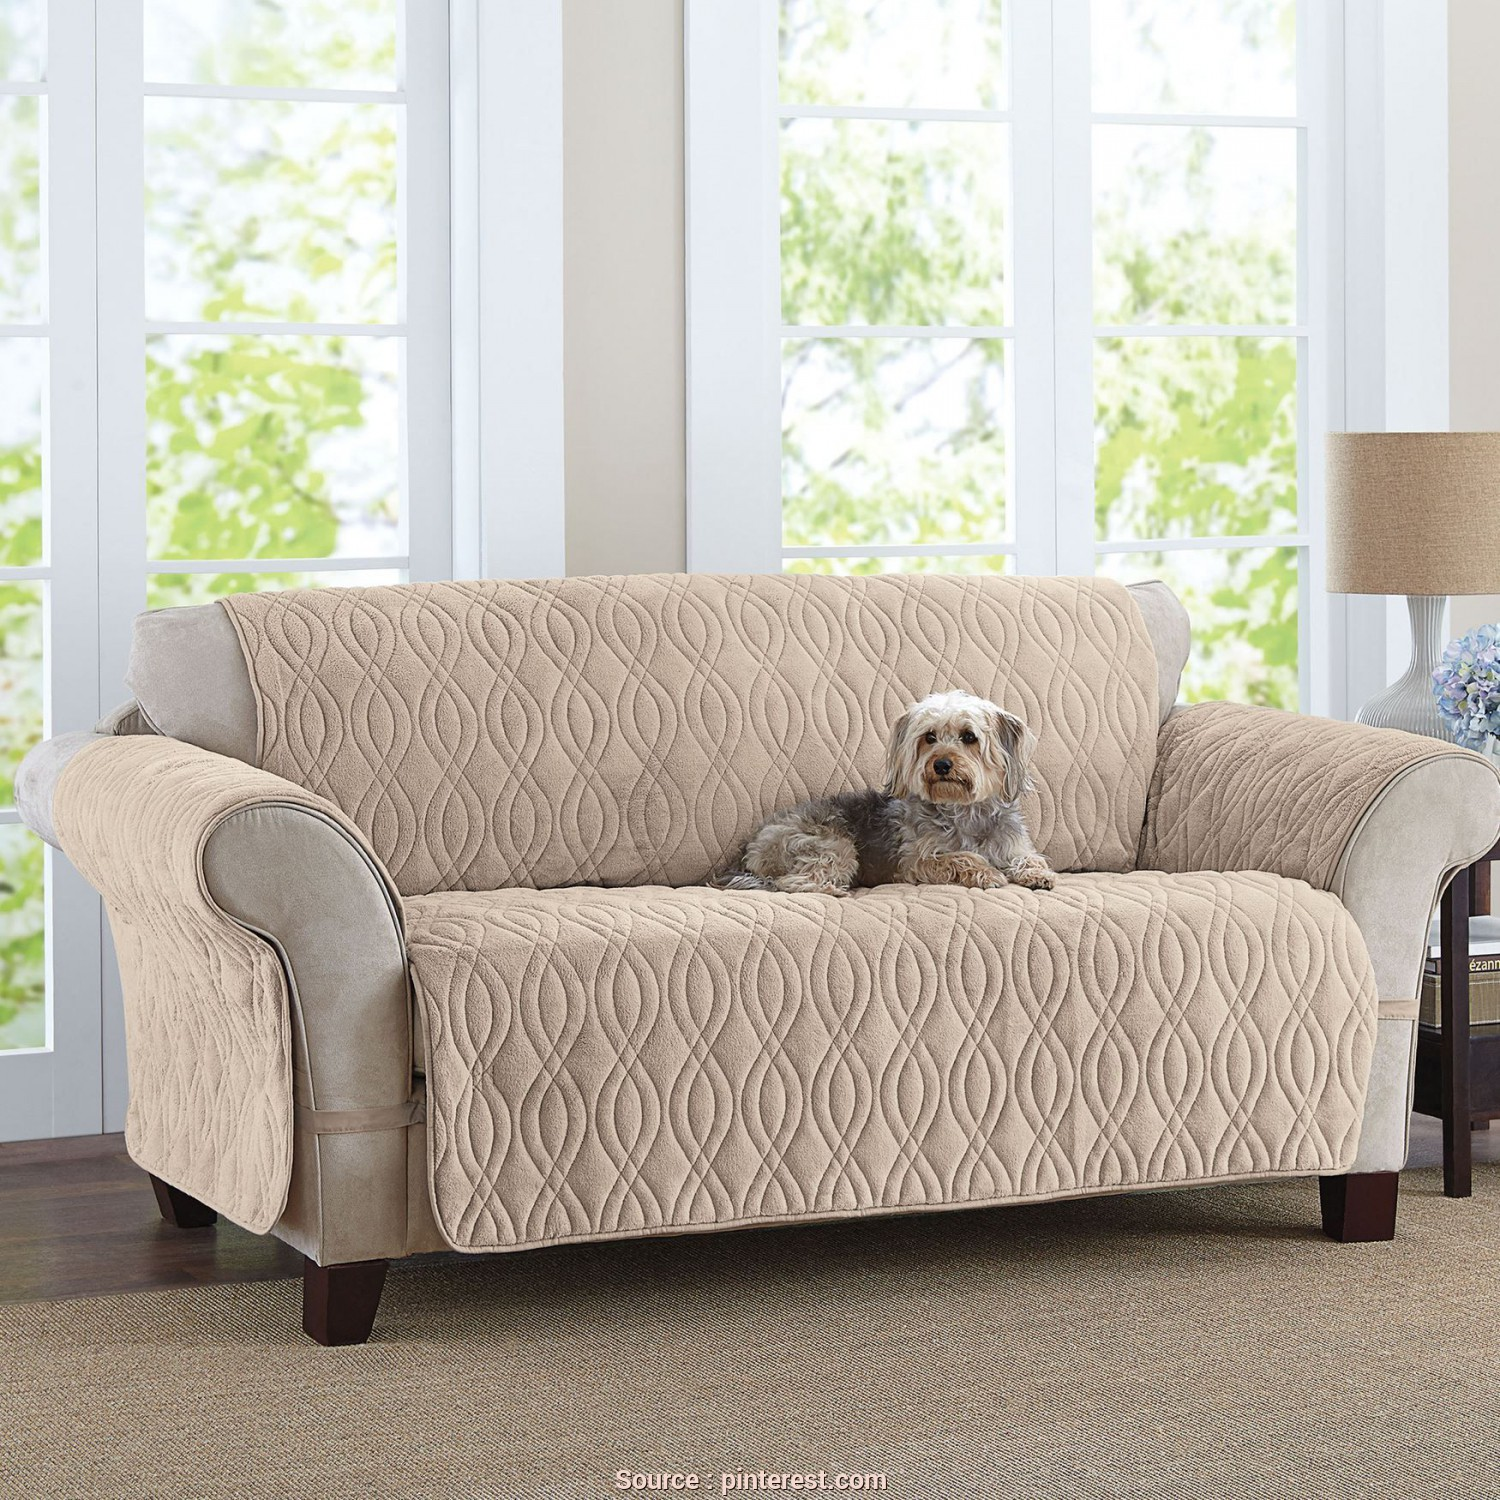 Sofa Saver Copridivano, Delizioso This Deluxe Quilted, Fleece-Like Sofa Cover Is Designed To Wrap, The Way